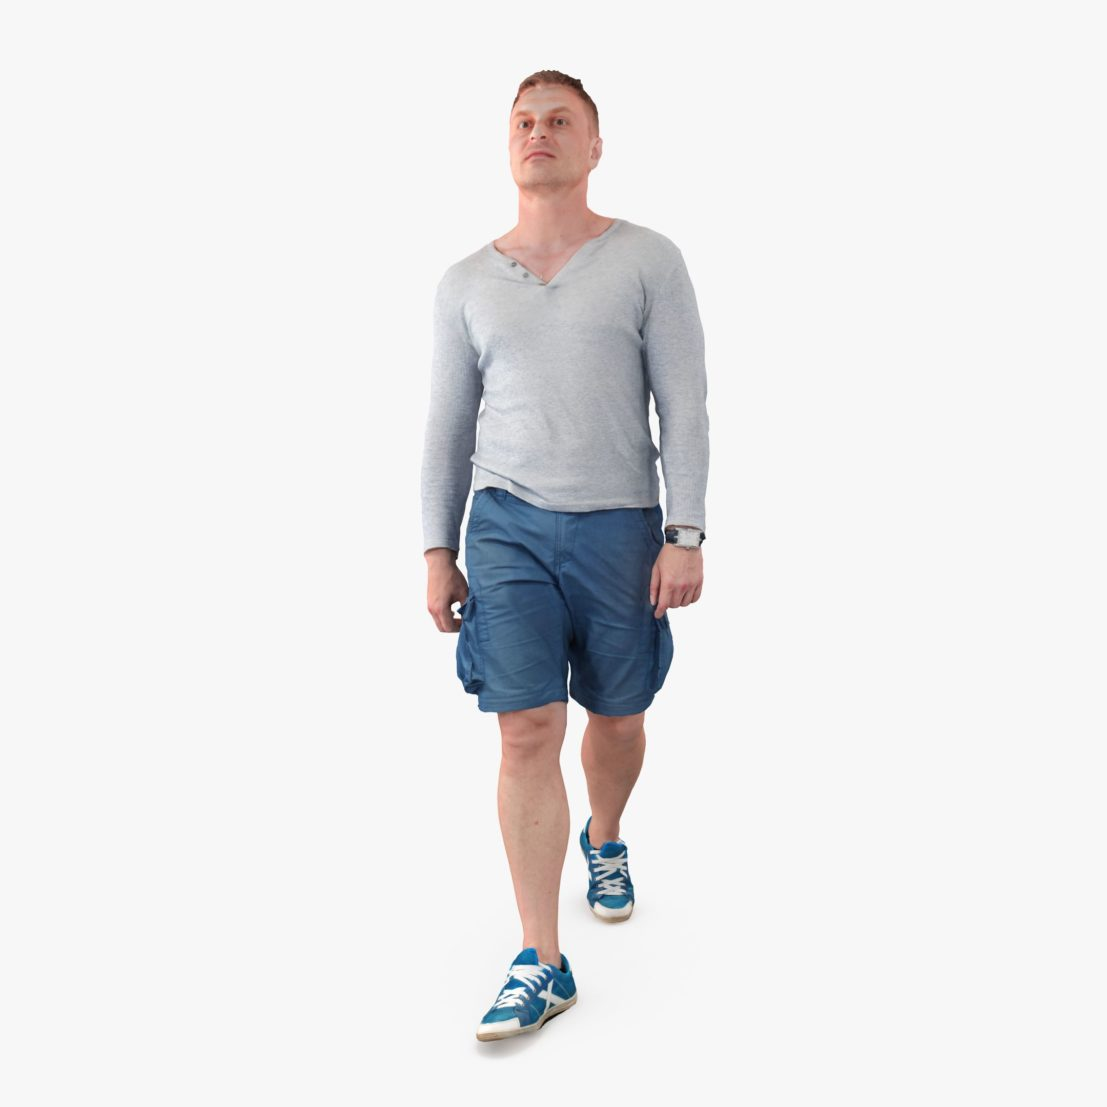 Casual Male Strolling 3D Model | 3DTree Scanning Studio